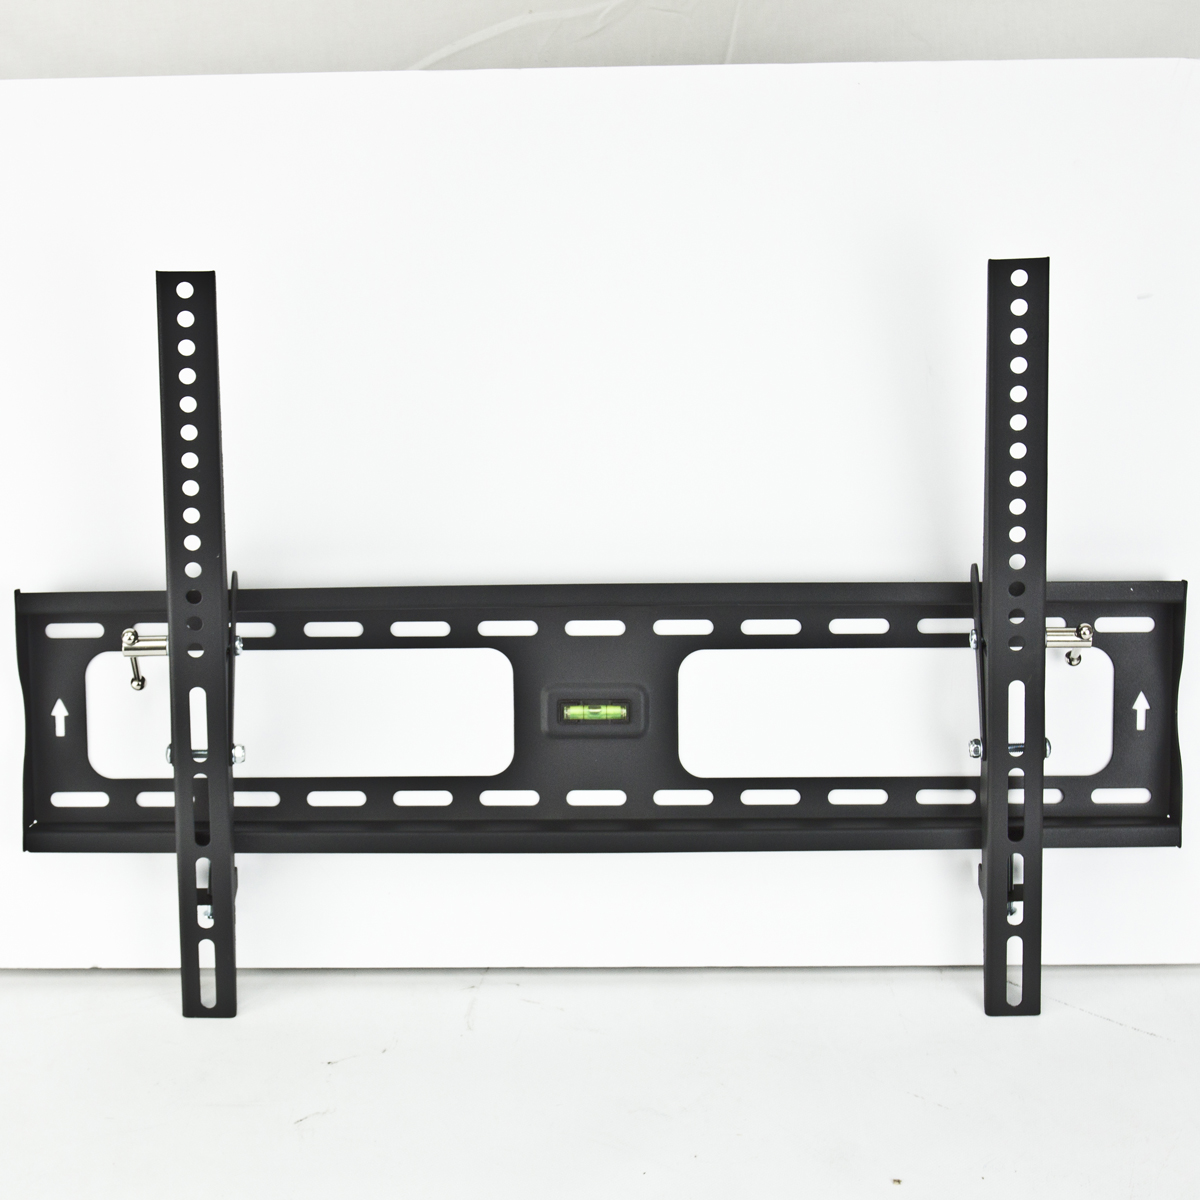 universal tilt tv wall mount flat screen bracket 30 60 lcd led plasma hdtv ebay. Black Bedroom Furniture Sets. Home Design Ideas